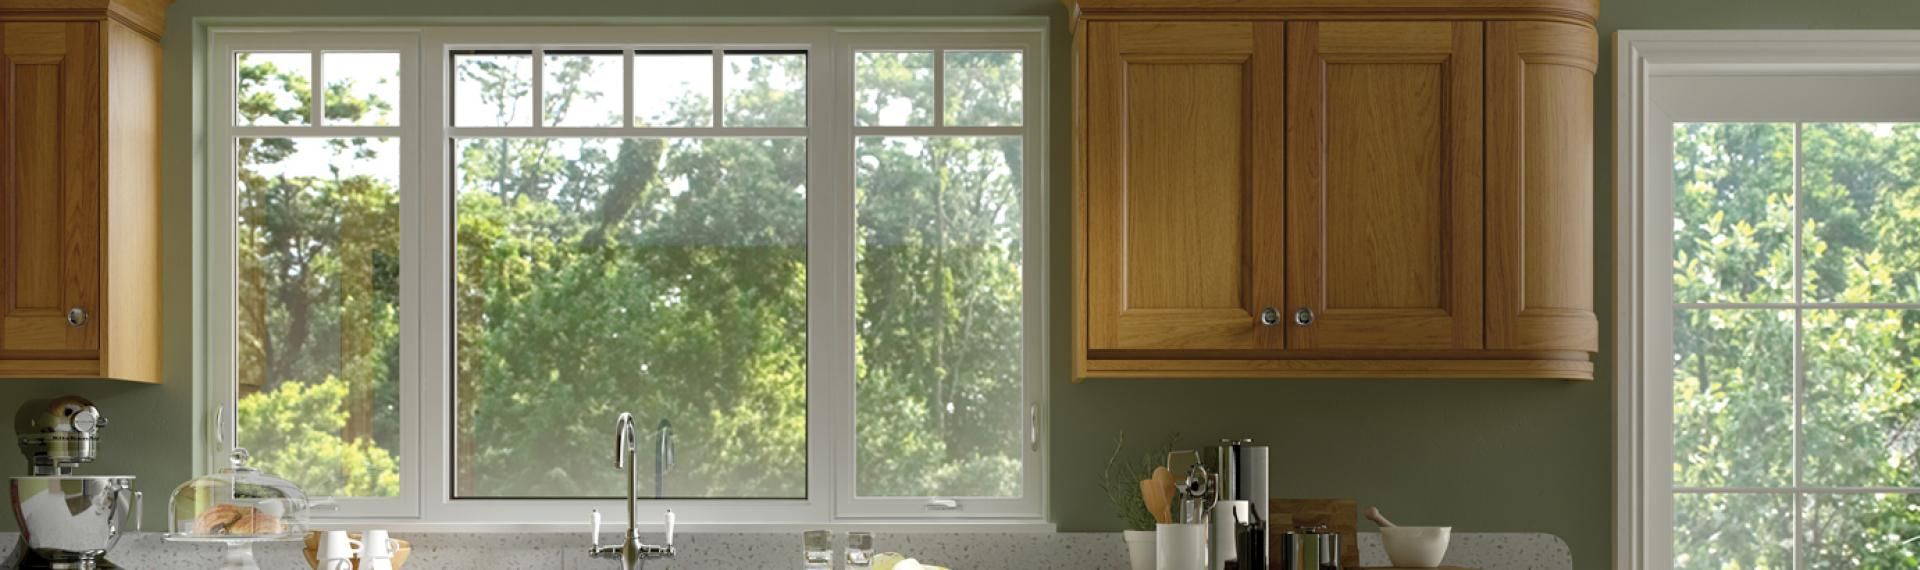 ultra woodclad series fiberglass windows milgard